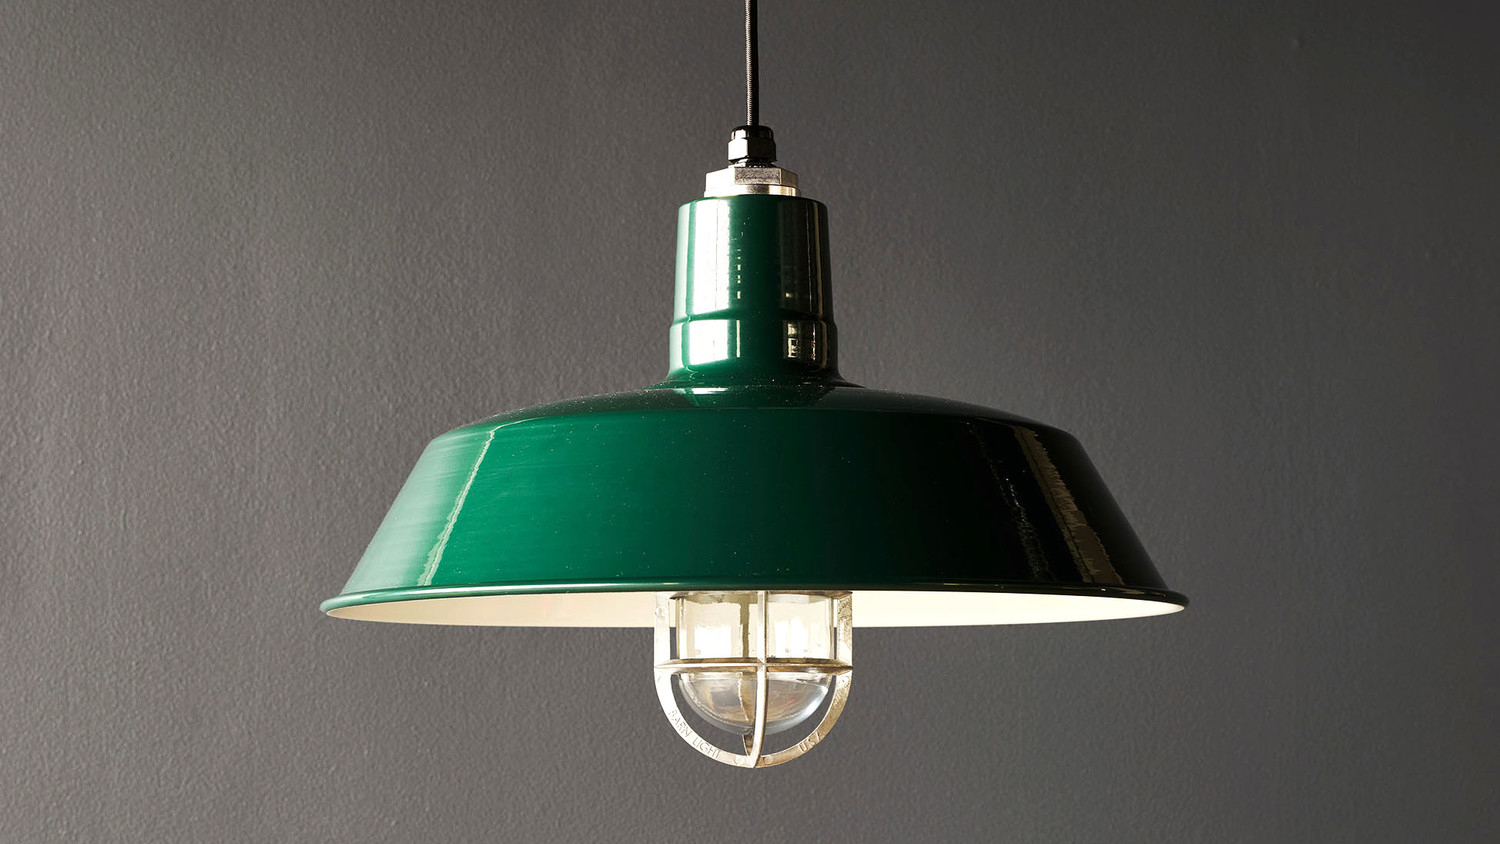 Deals On Amara 2 Light Dome Pendant Williston Forge Finish Regarding Amara 2 Light Dome Pendants (Gallery 12 of 30)